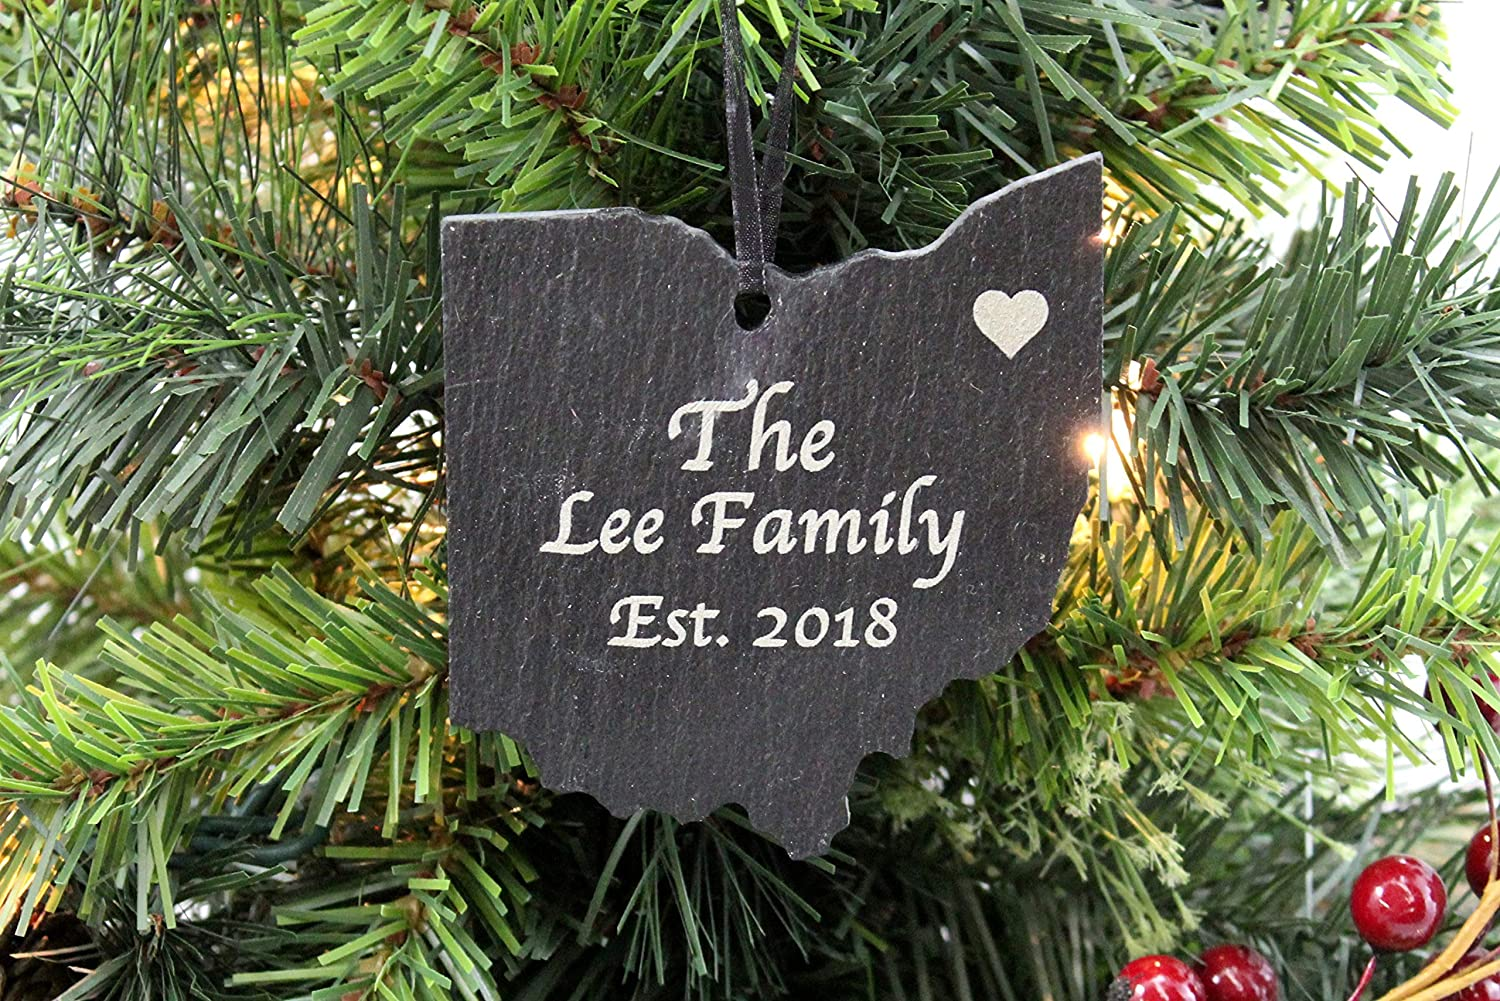 Christmas Ornaments Personalized.Custom Ohio Slate Christmas Ornament Personalized With Laser Engraving